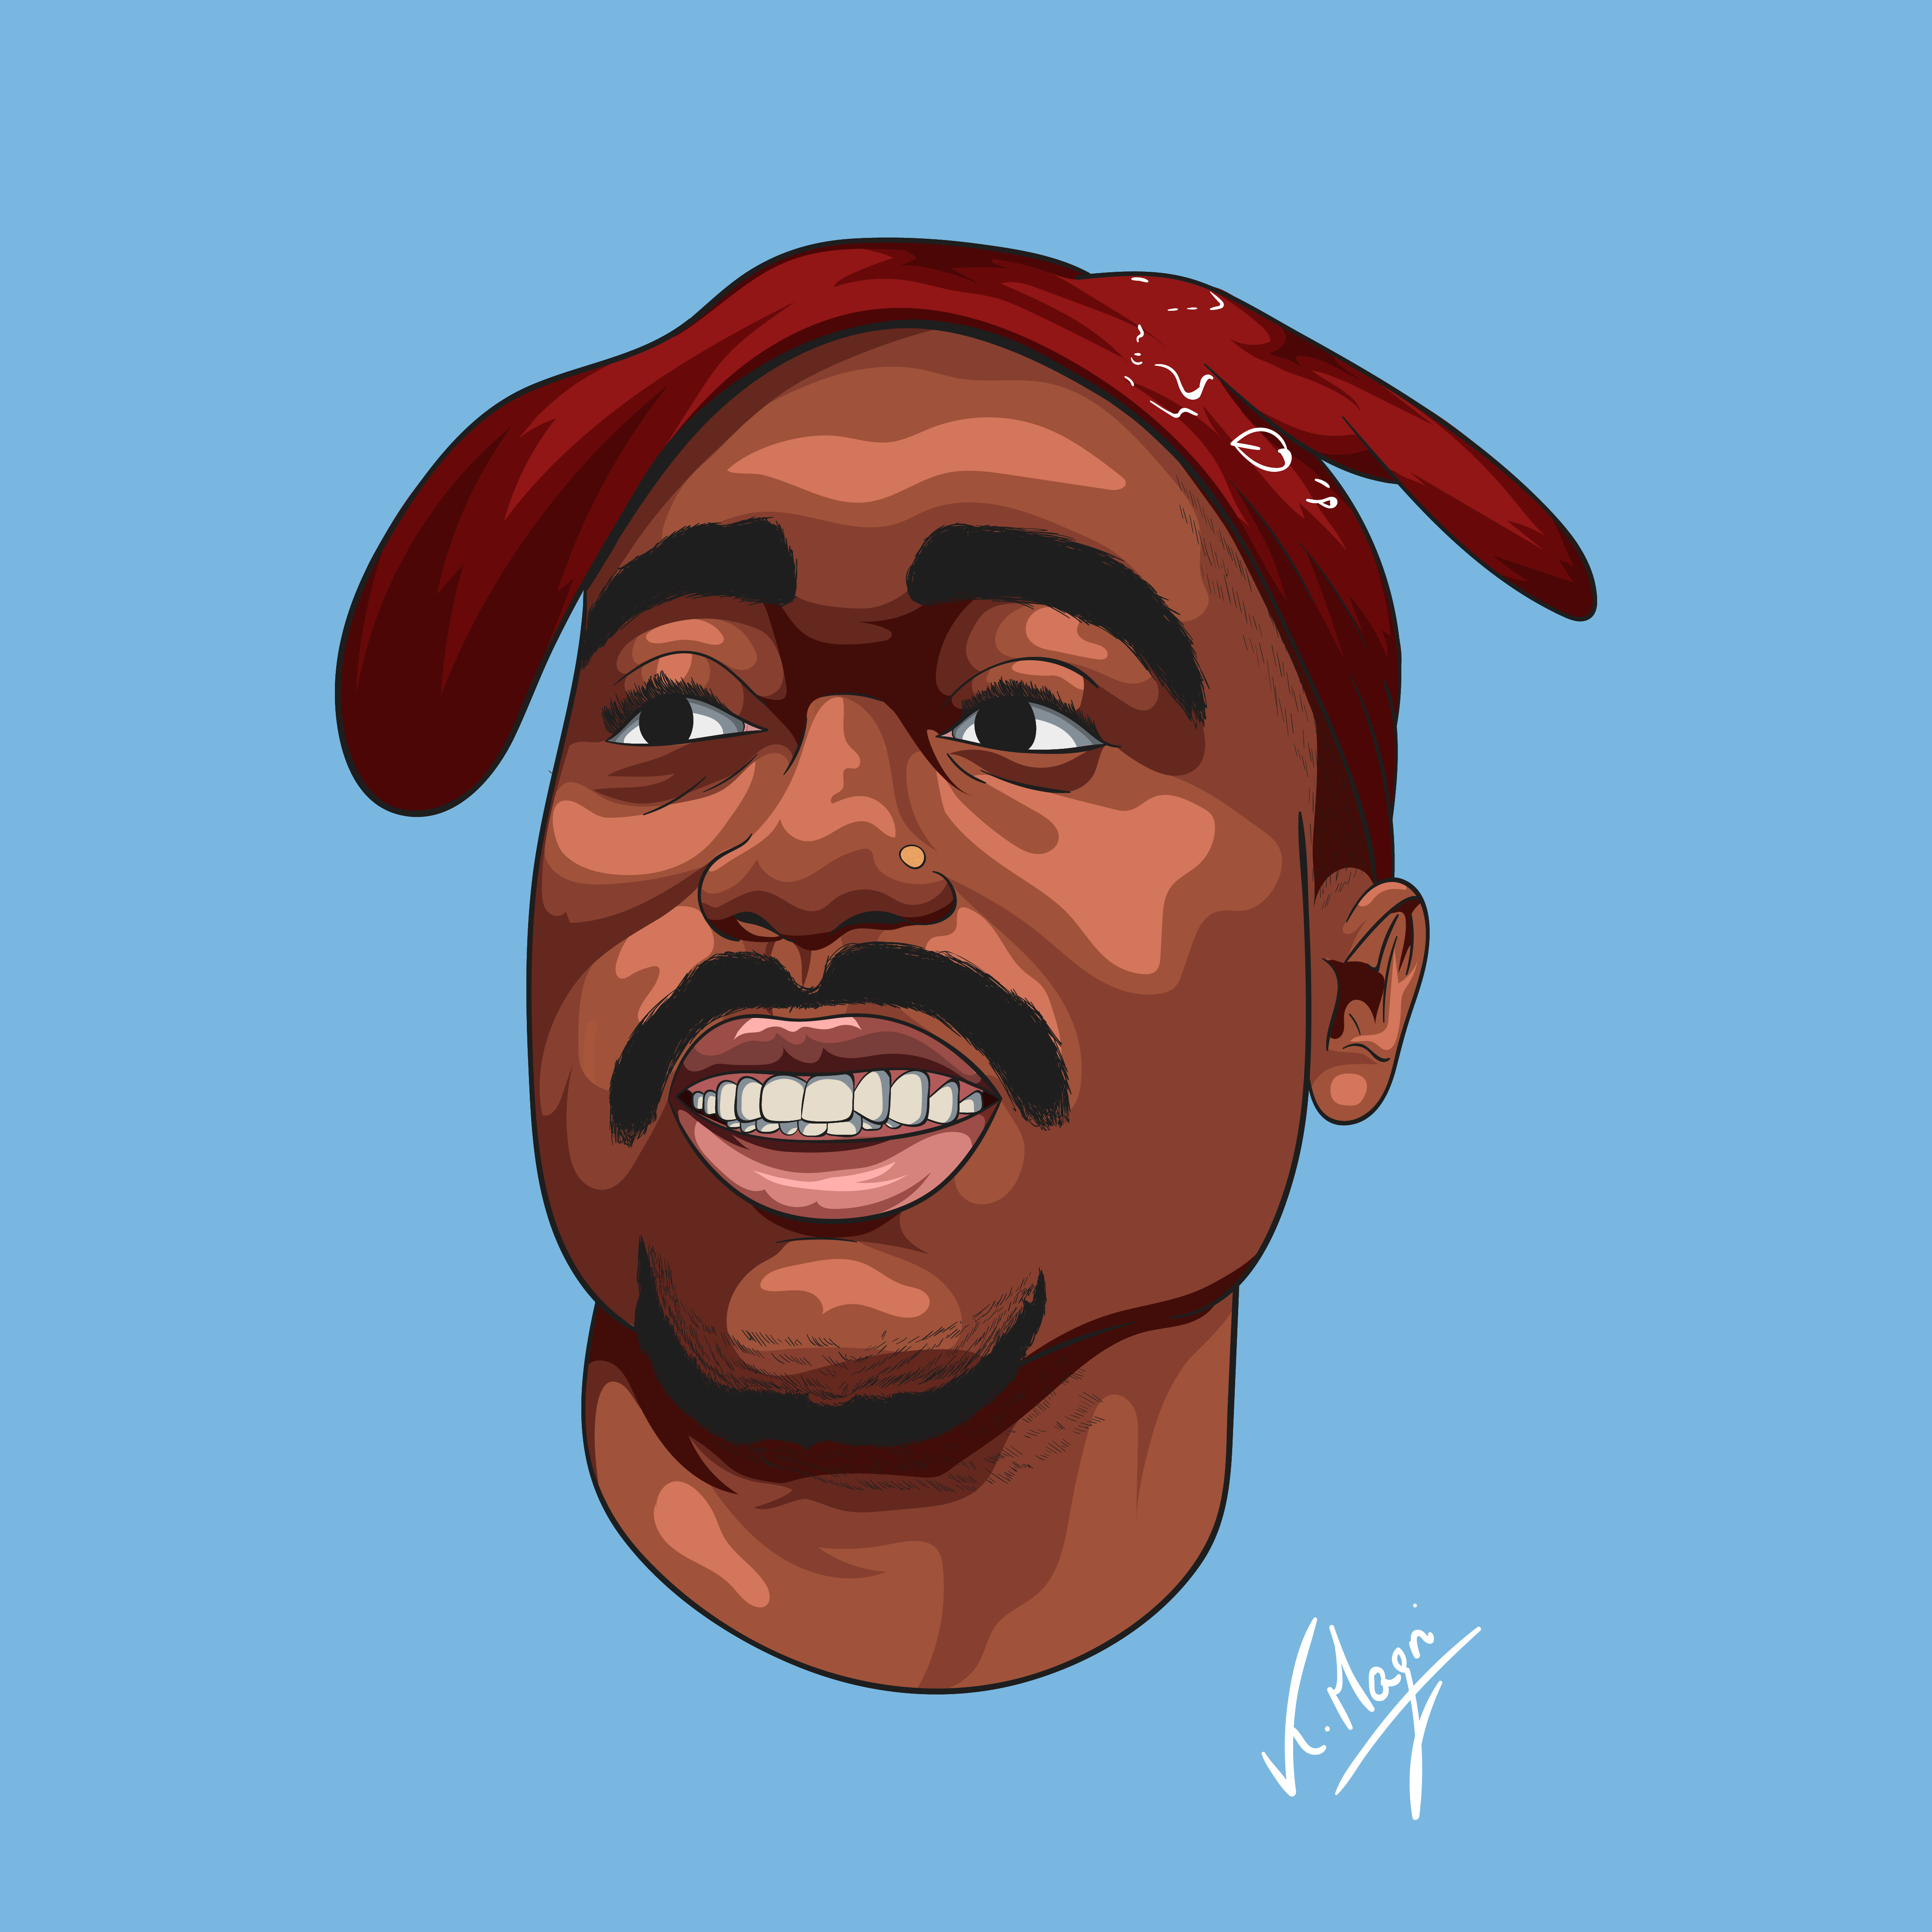 Tupac Shakur Cartoon Illustration  Digital Art